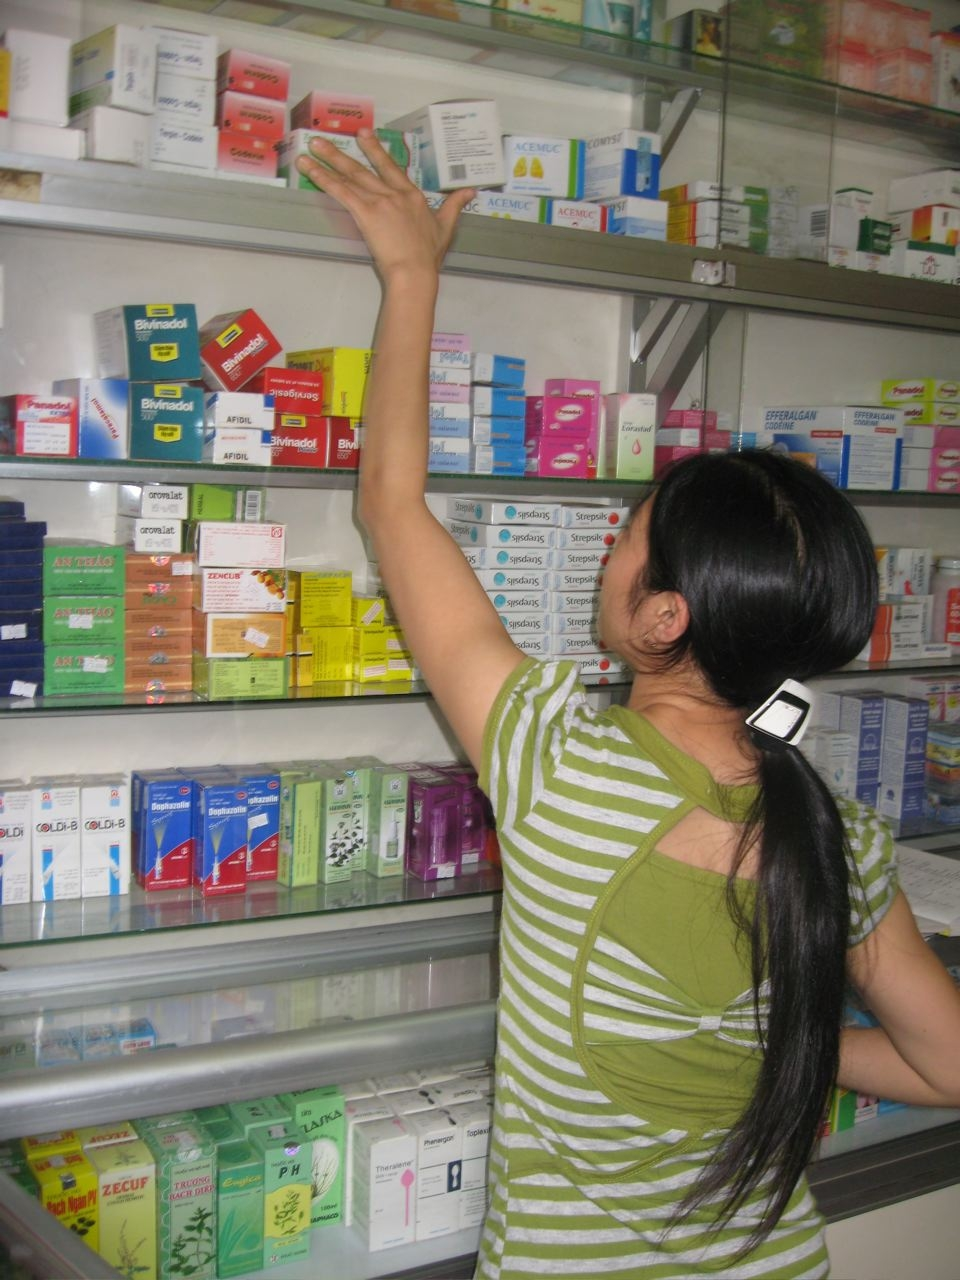 Medicines are increasingly out of reach of Vietnam's poor